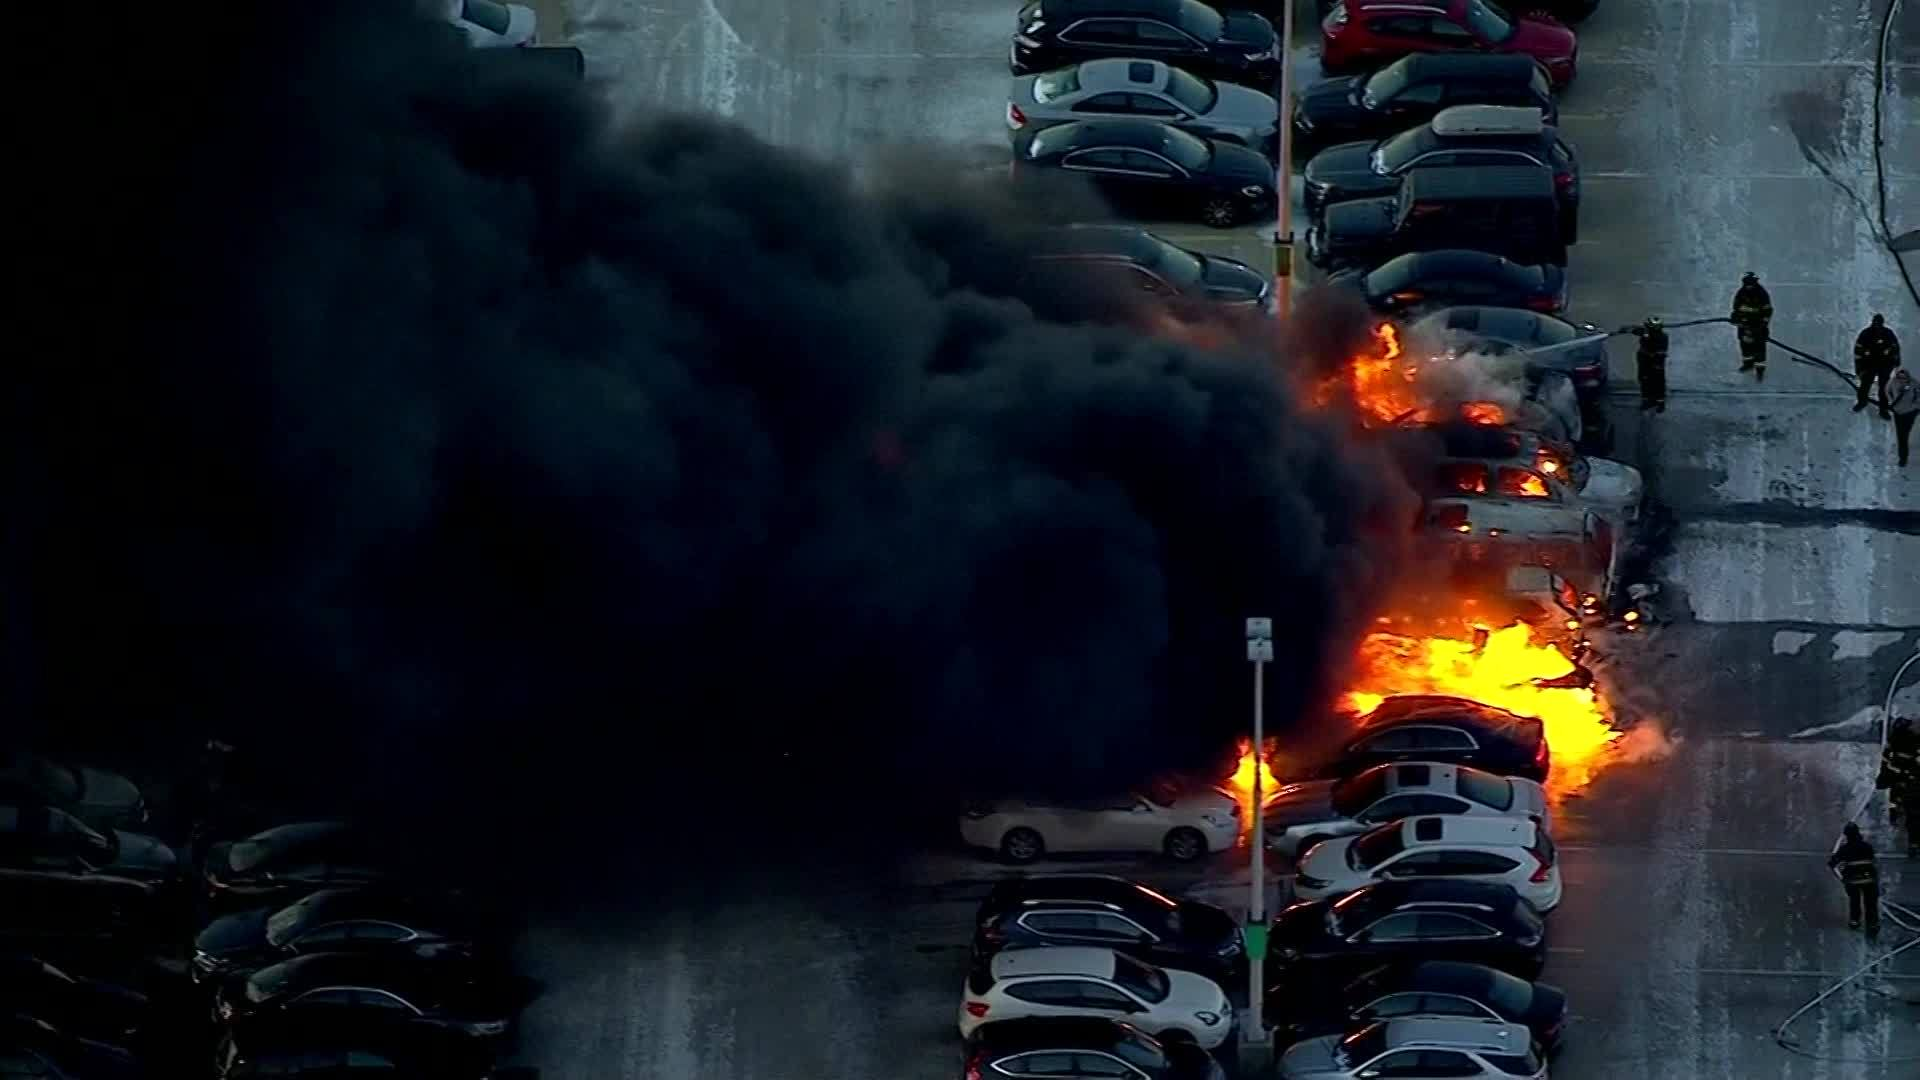 Cars Catch Fire at Newark Airport